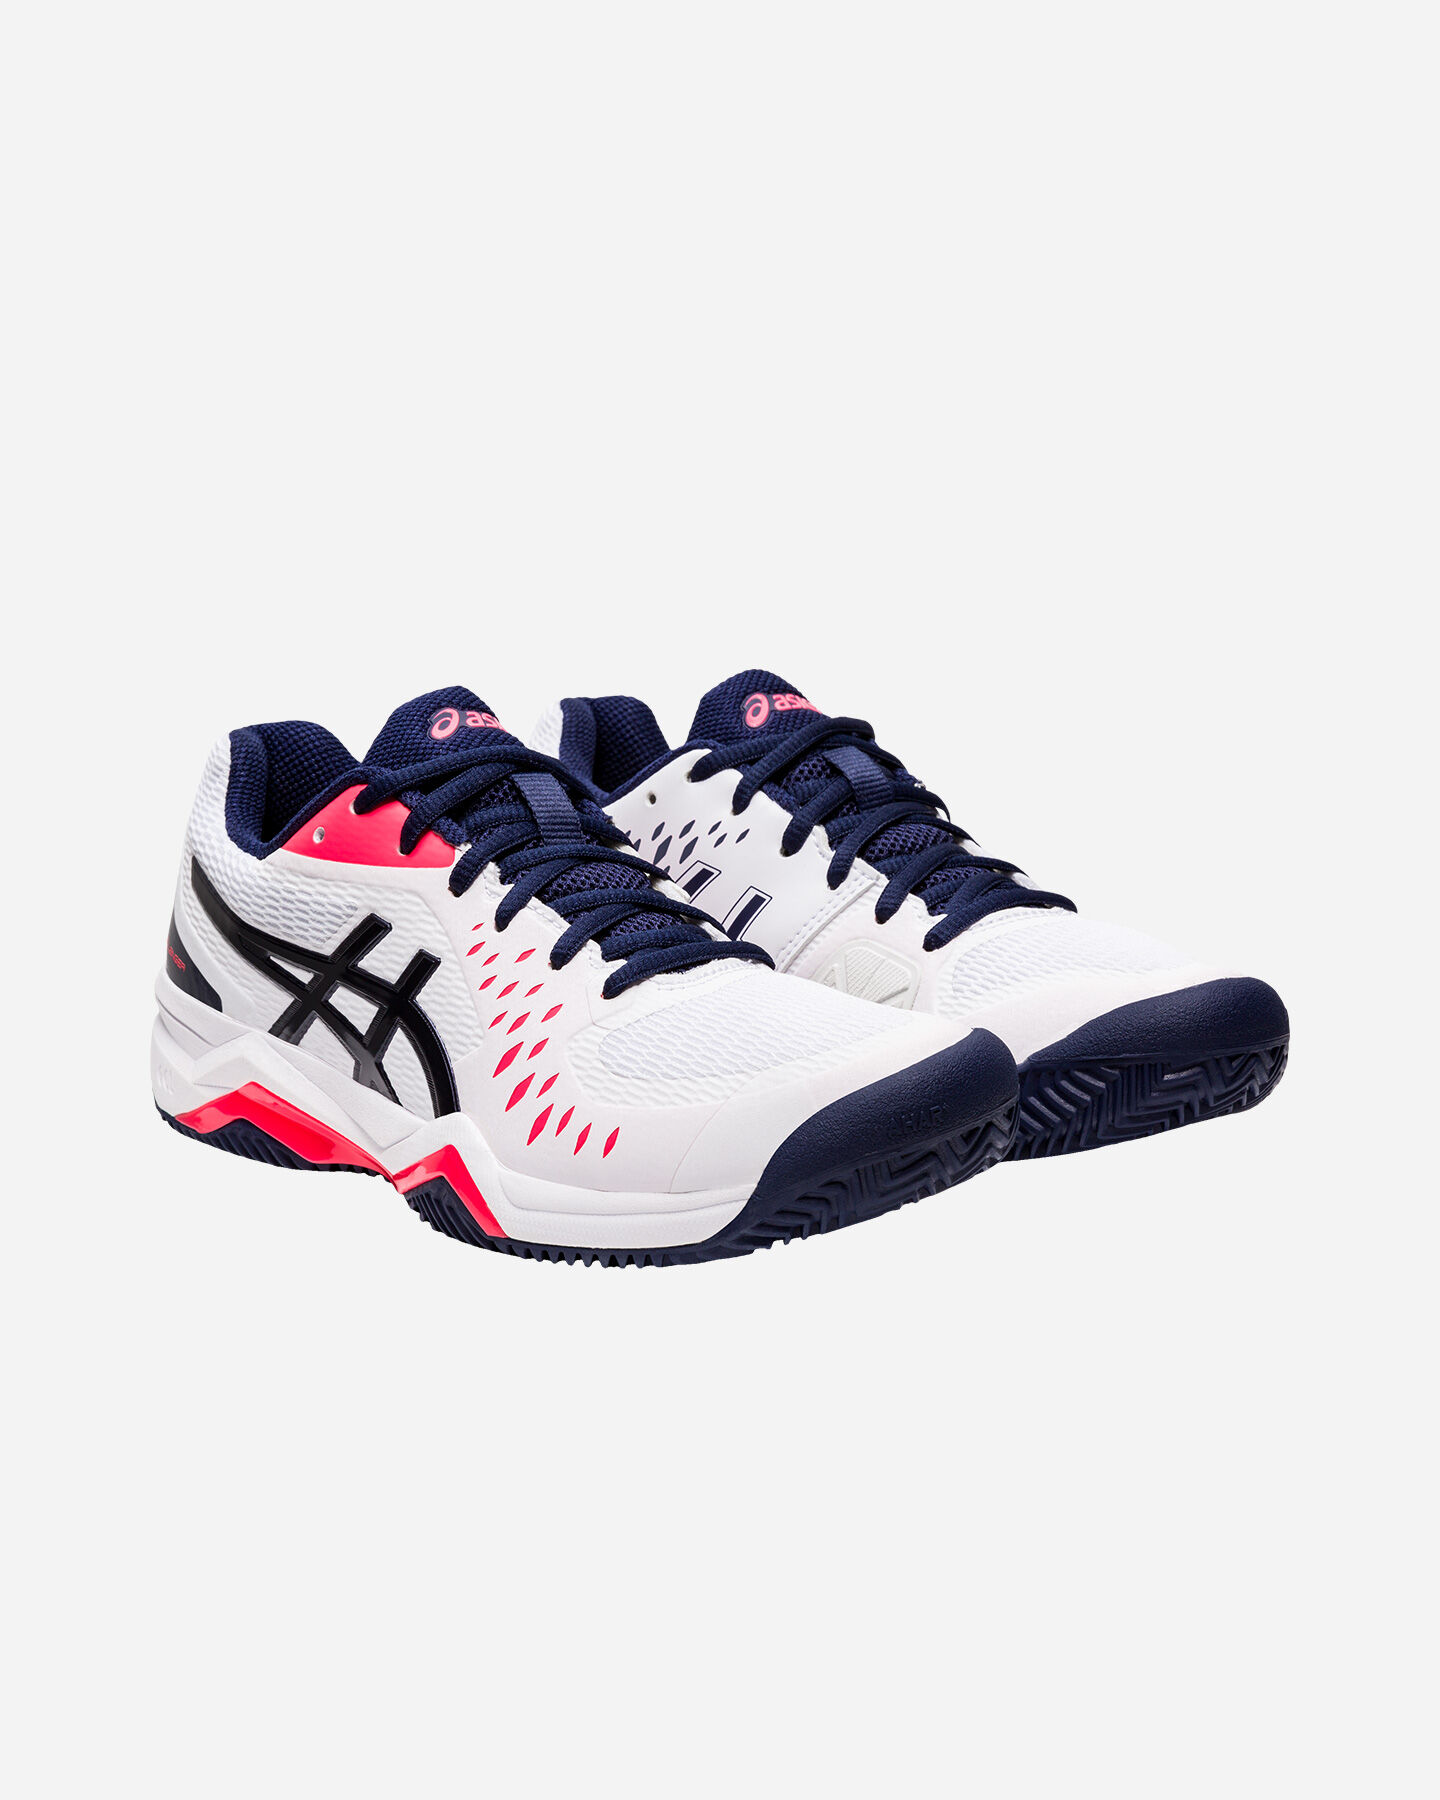 Scarpe tennis ASICS GEL CHALLENGER 12 CLAY W S5159475 scatto 1